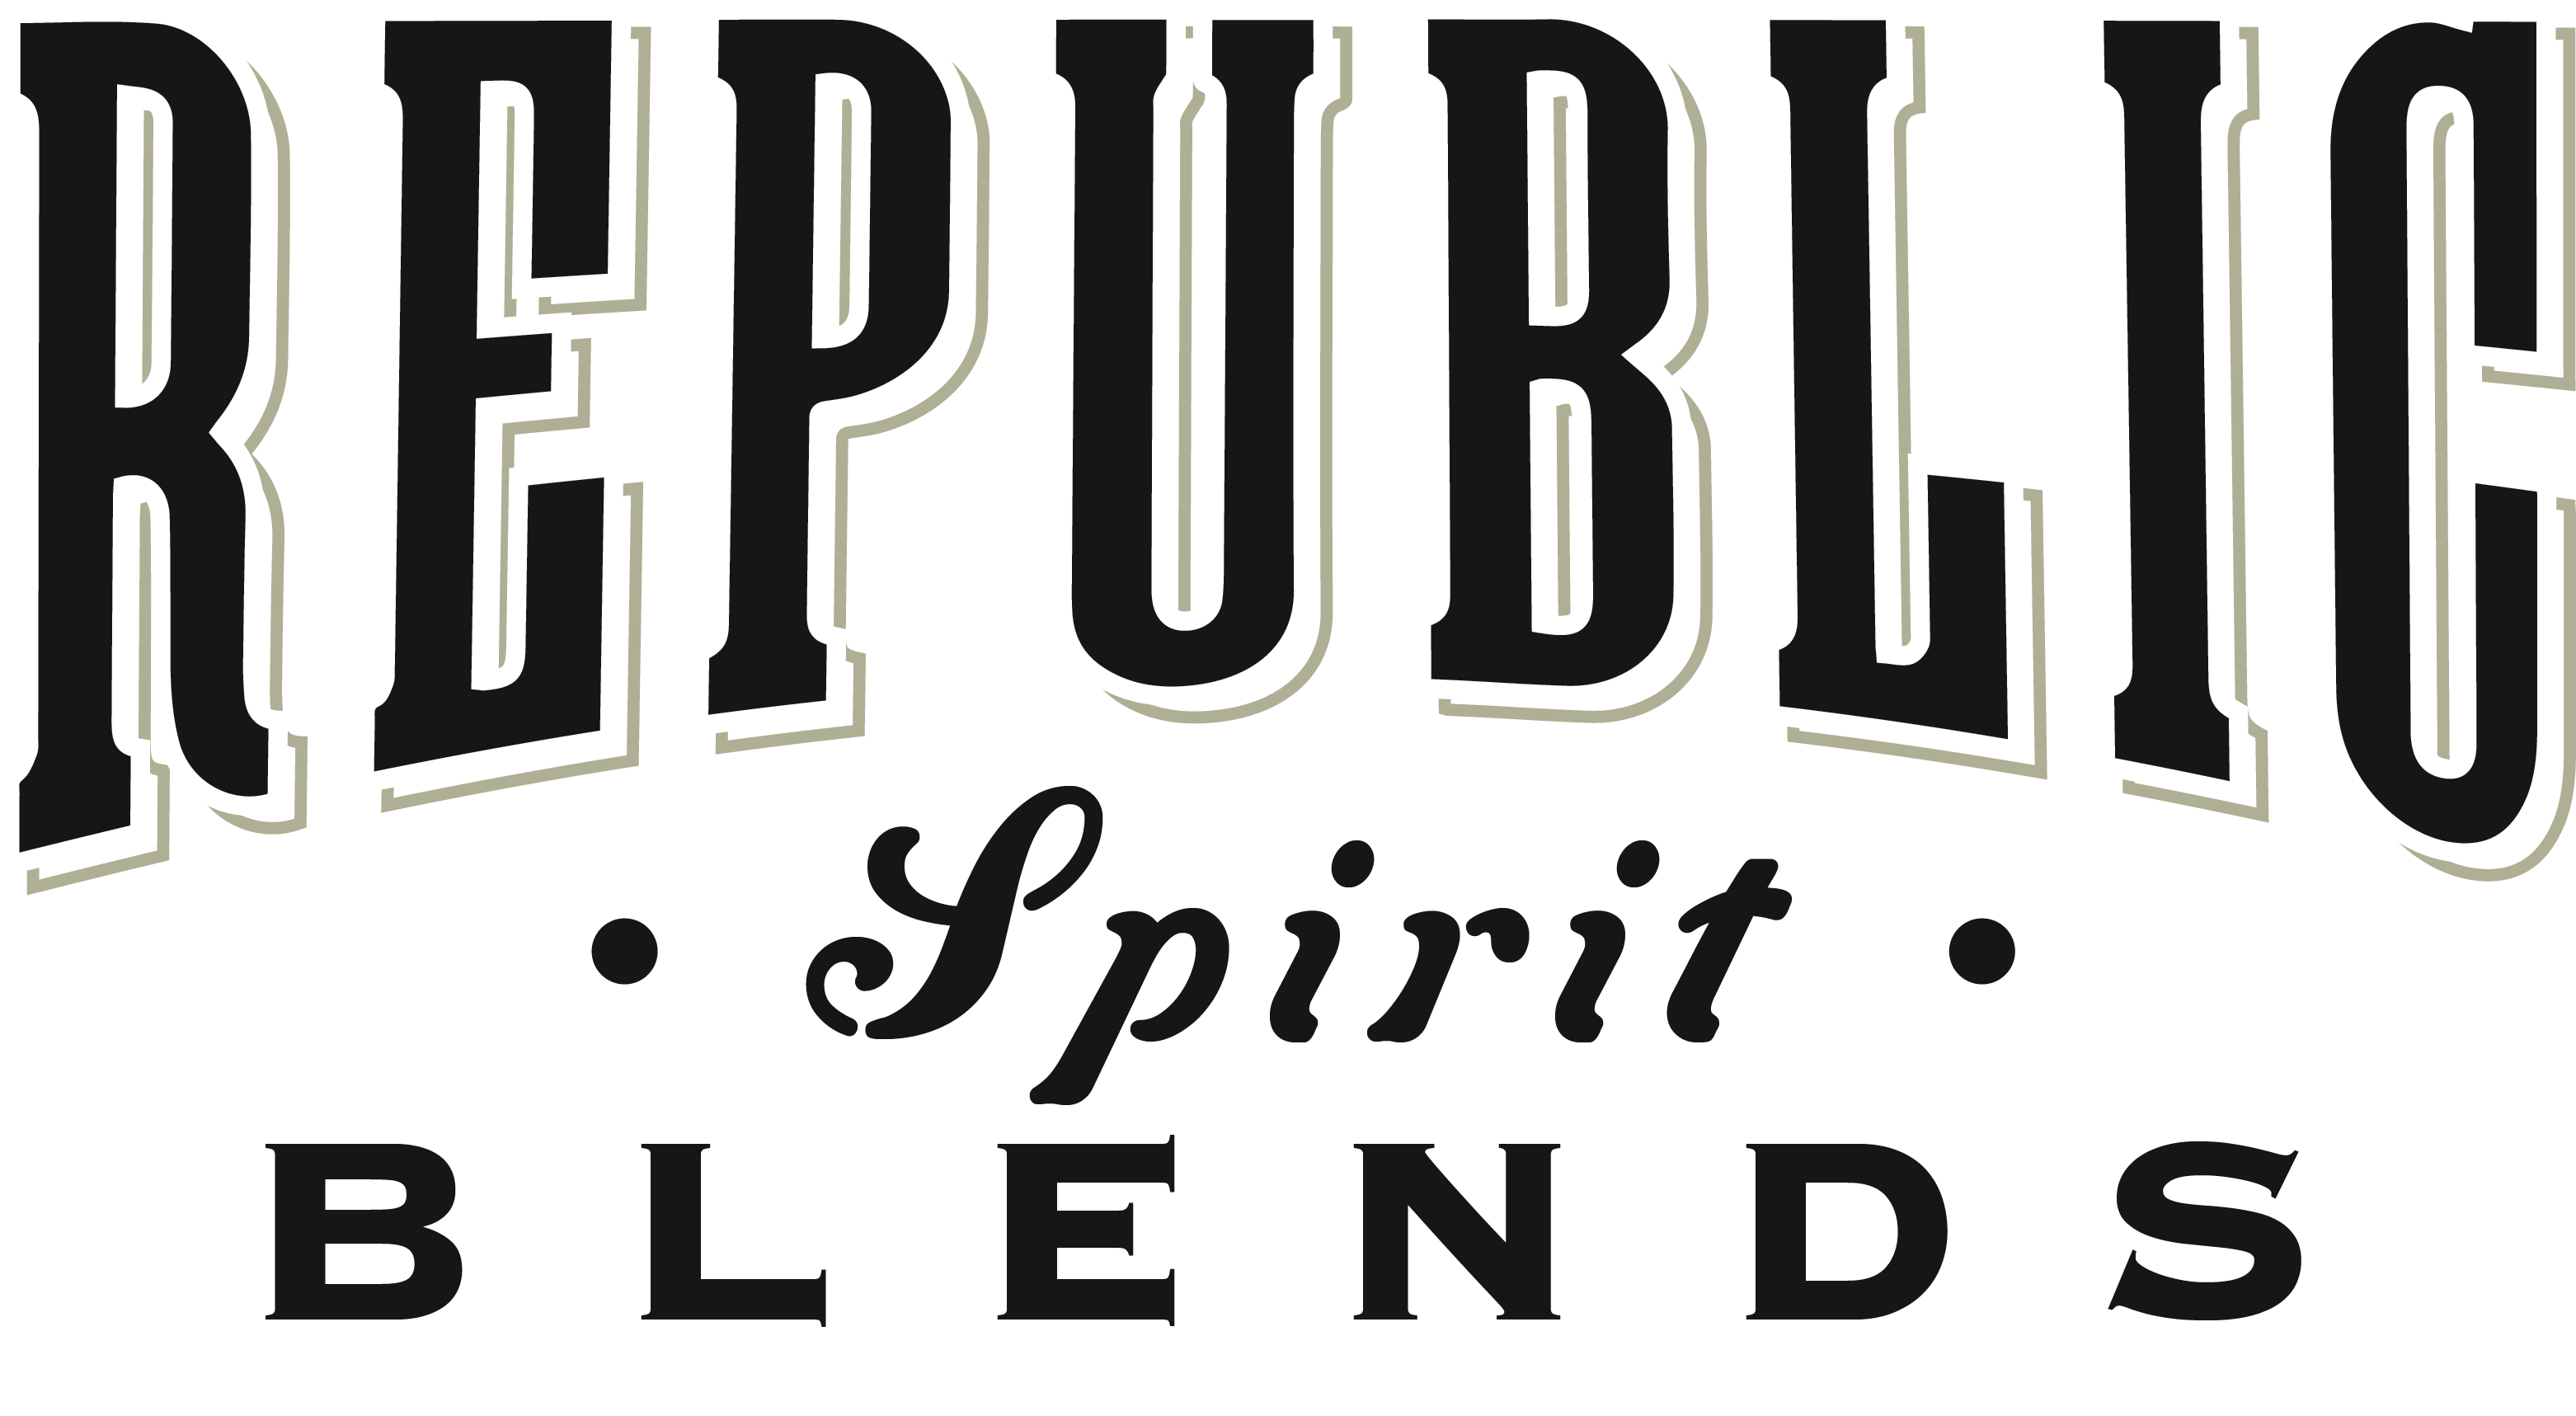 Republic Spirit Blends